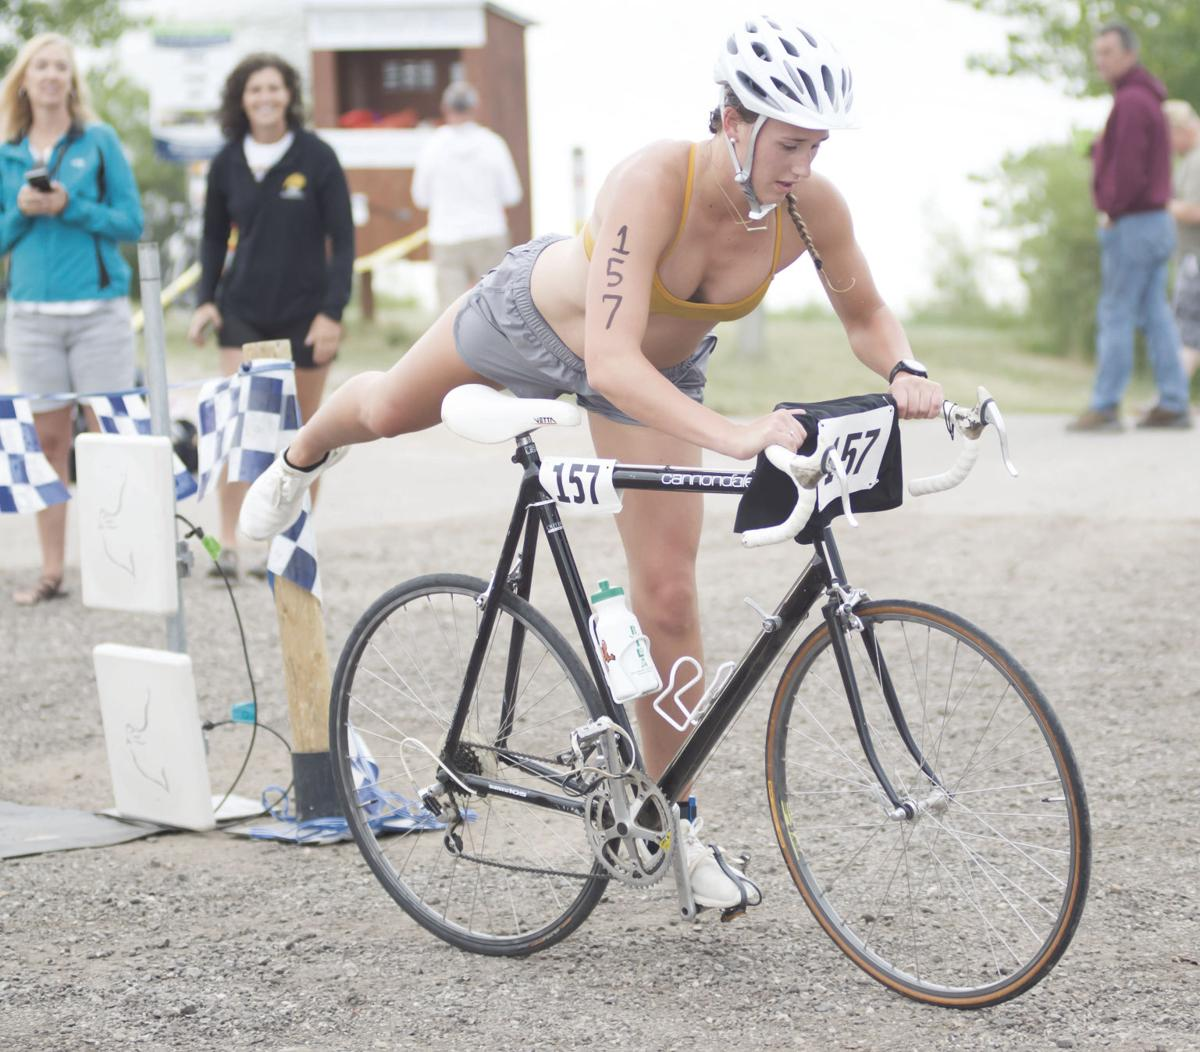 Thiele wins triathalon 1